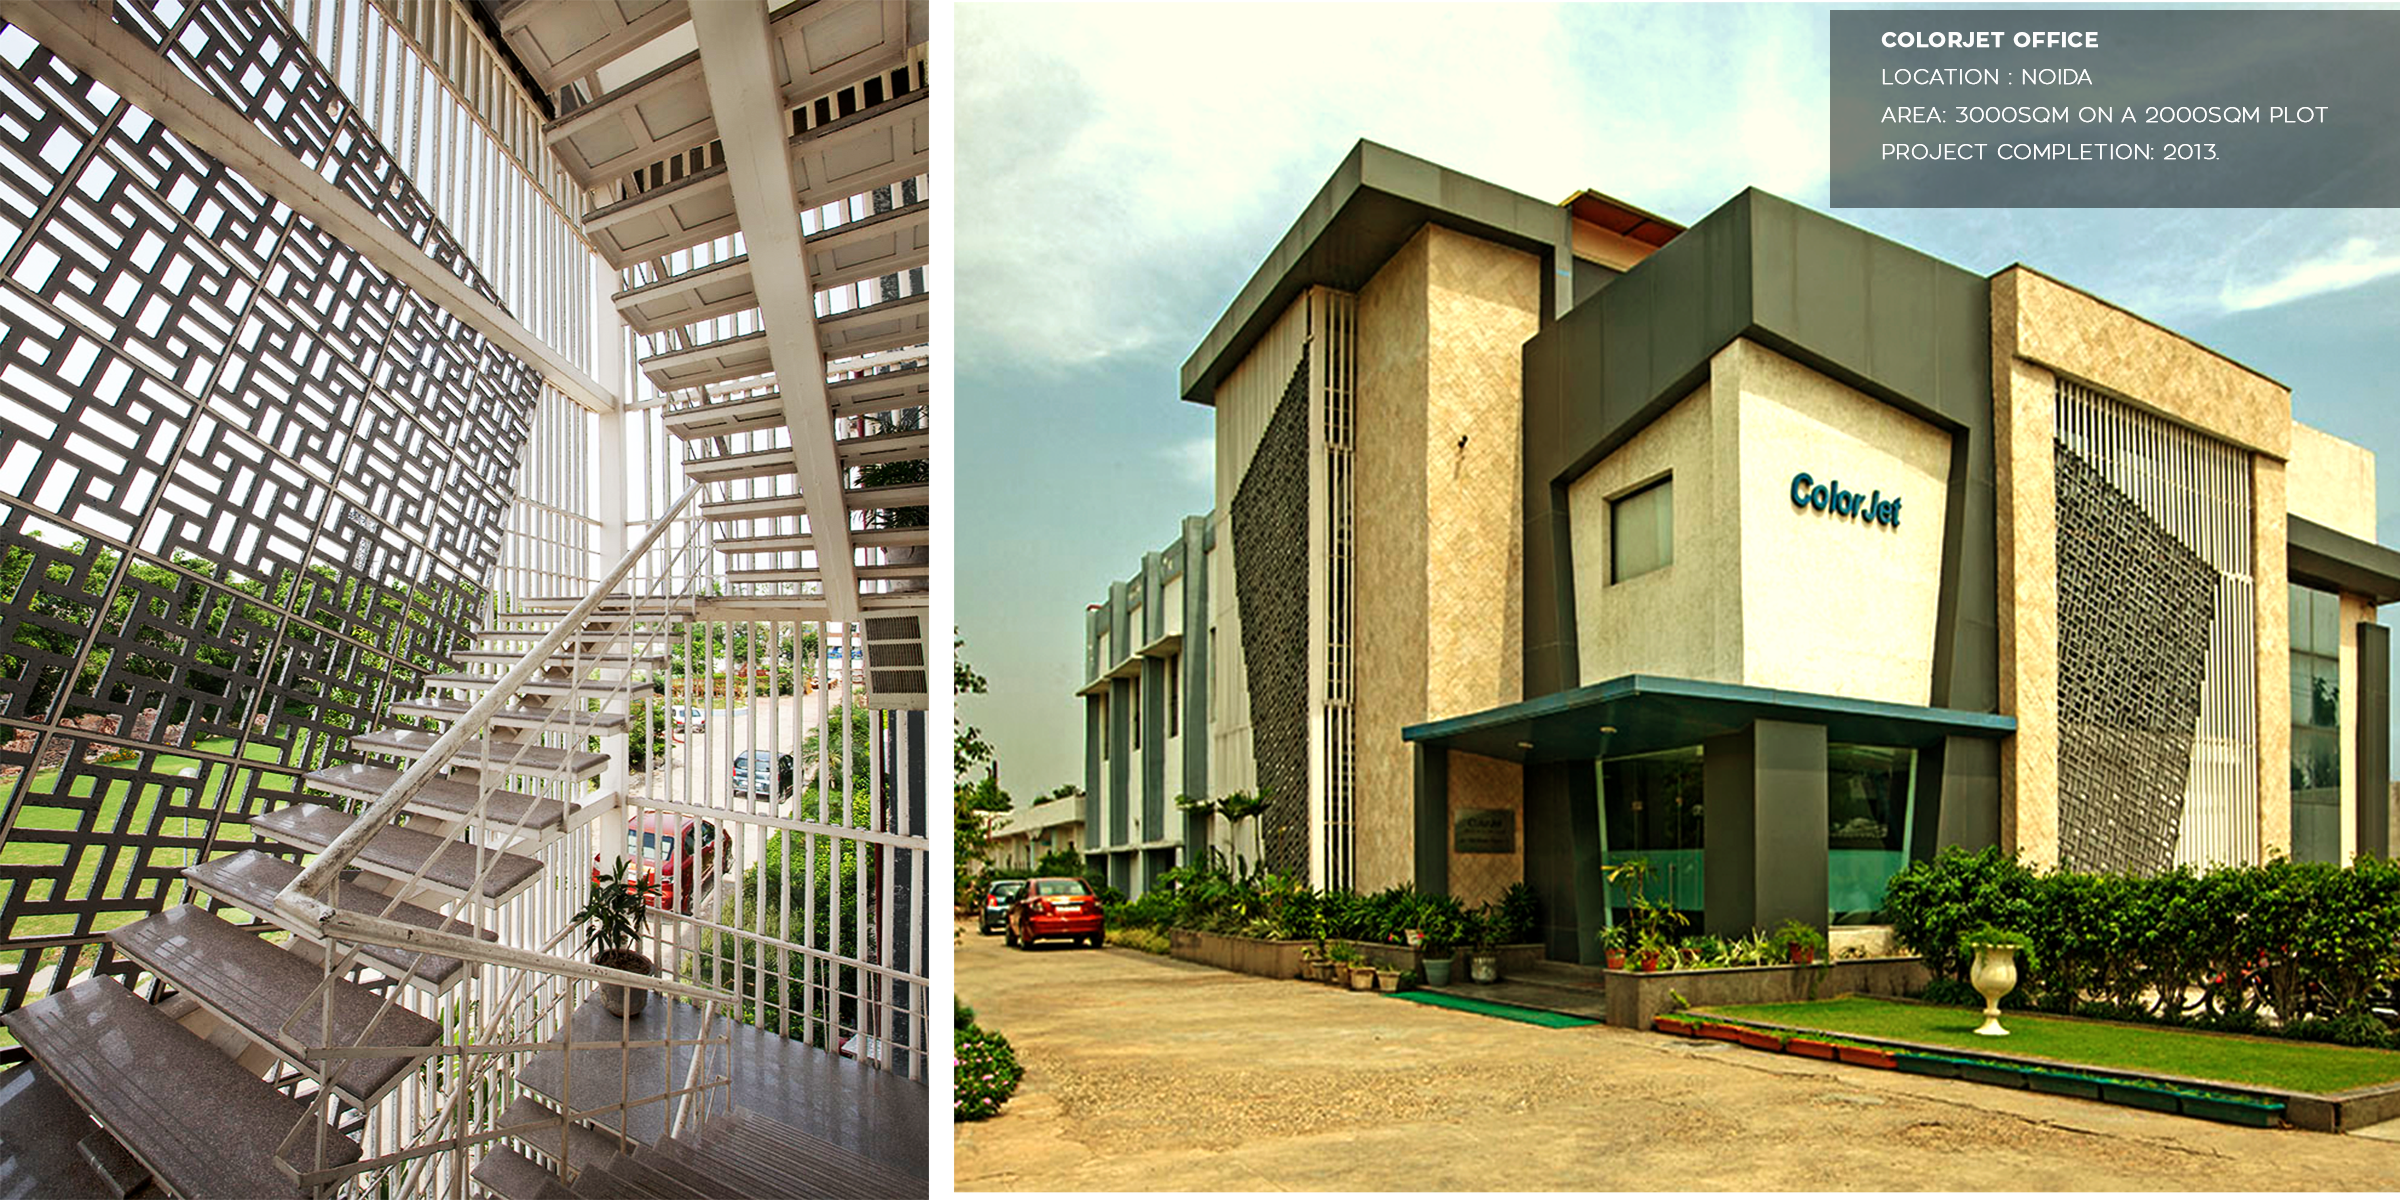 colorjet-the-novarch-architects-best-architects-in-cr-park-south-delhi-110019